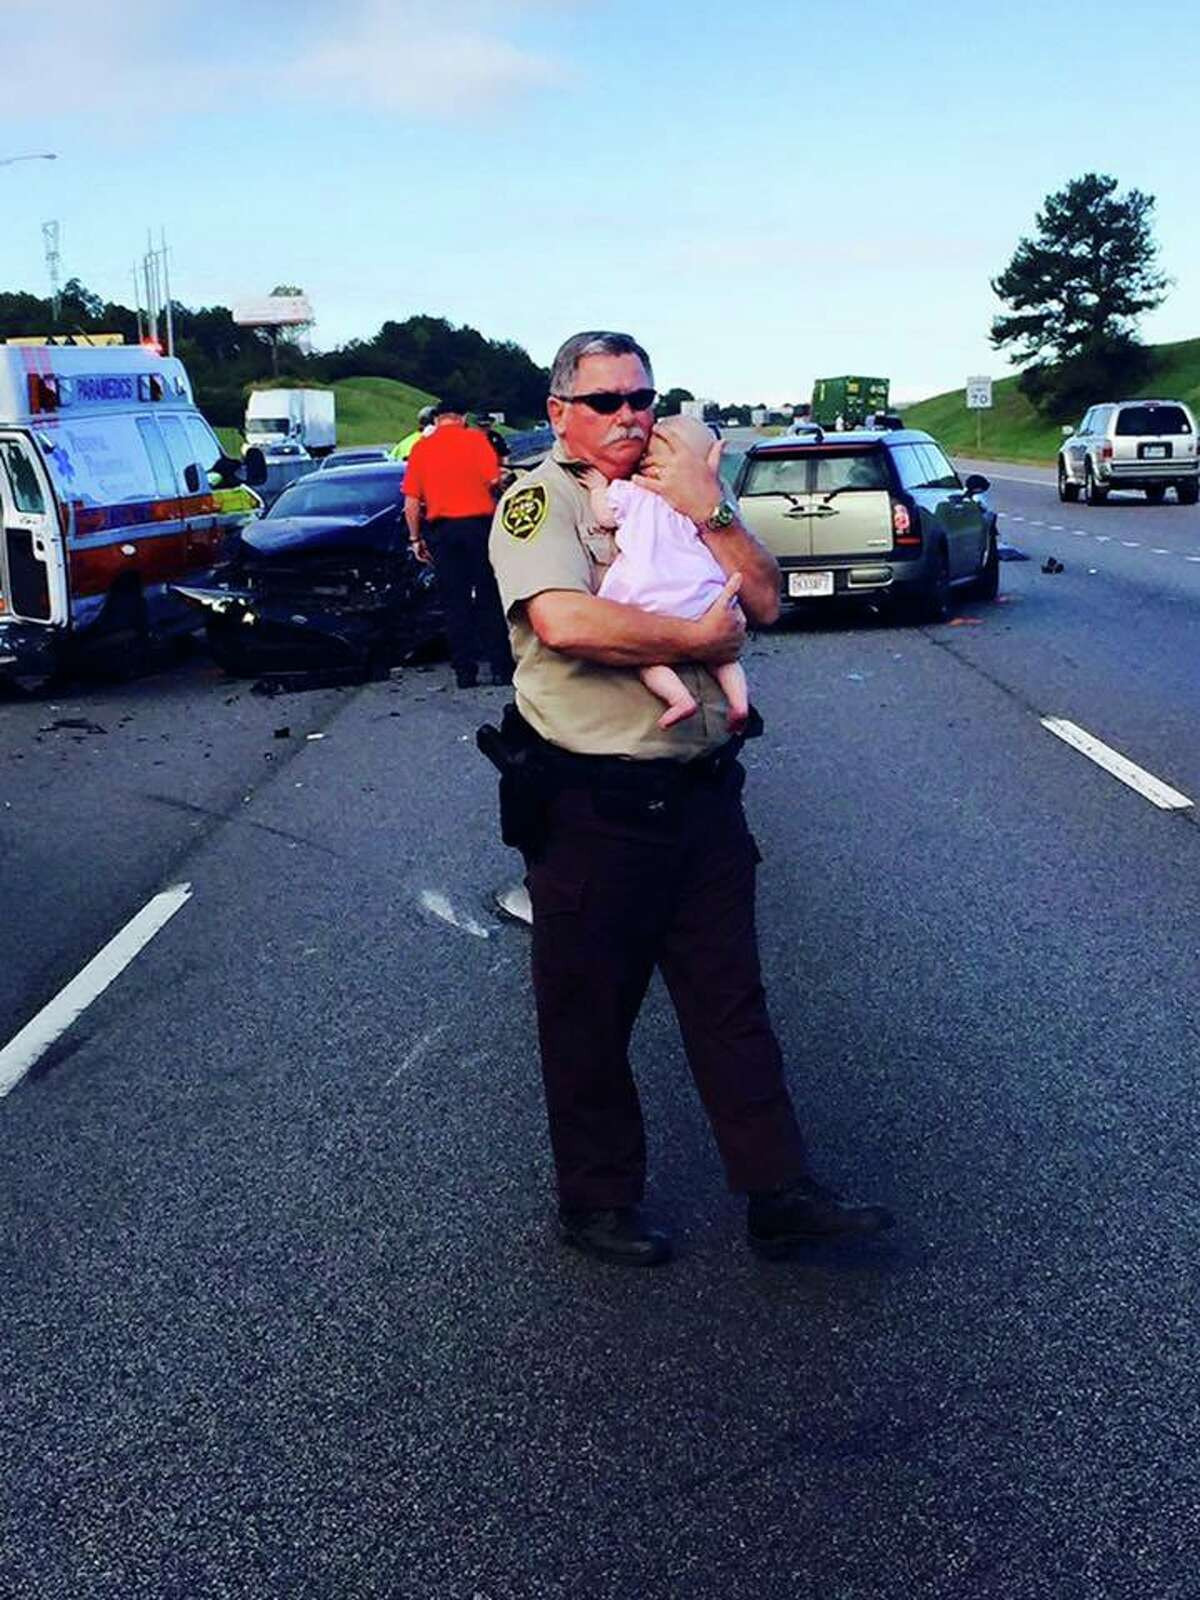 A photo of Jefferson County Deputy Ric Lindley comforting a baby after a car crash on Oct. 5, 2015, has gone viral.